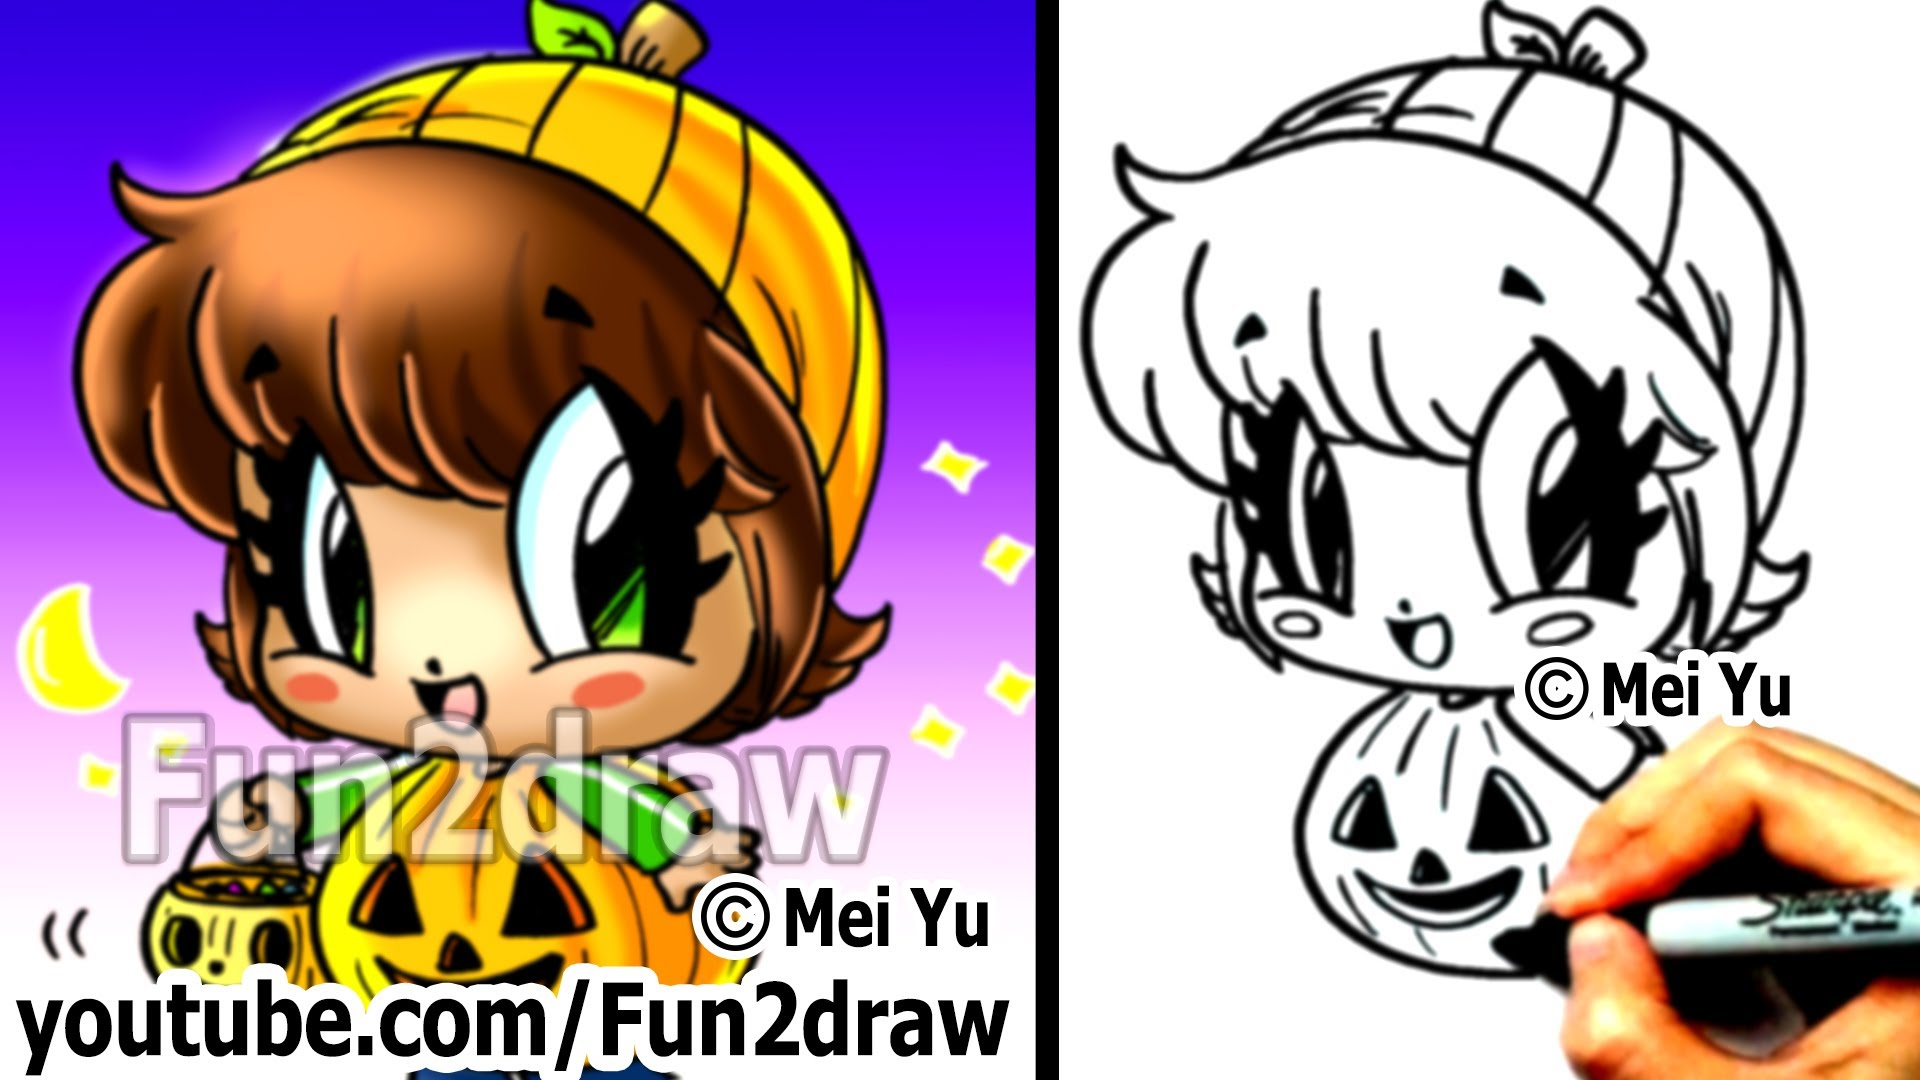 Halloween character pumpkin girl clipart image royalty free library How to Draw Halloween Characters - Pumpkin Girl - Draw People ... image royalty free library